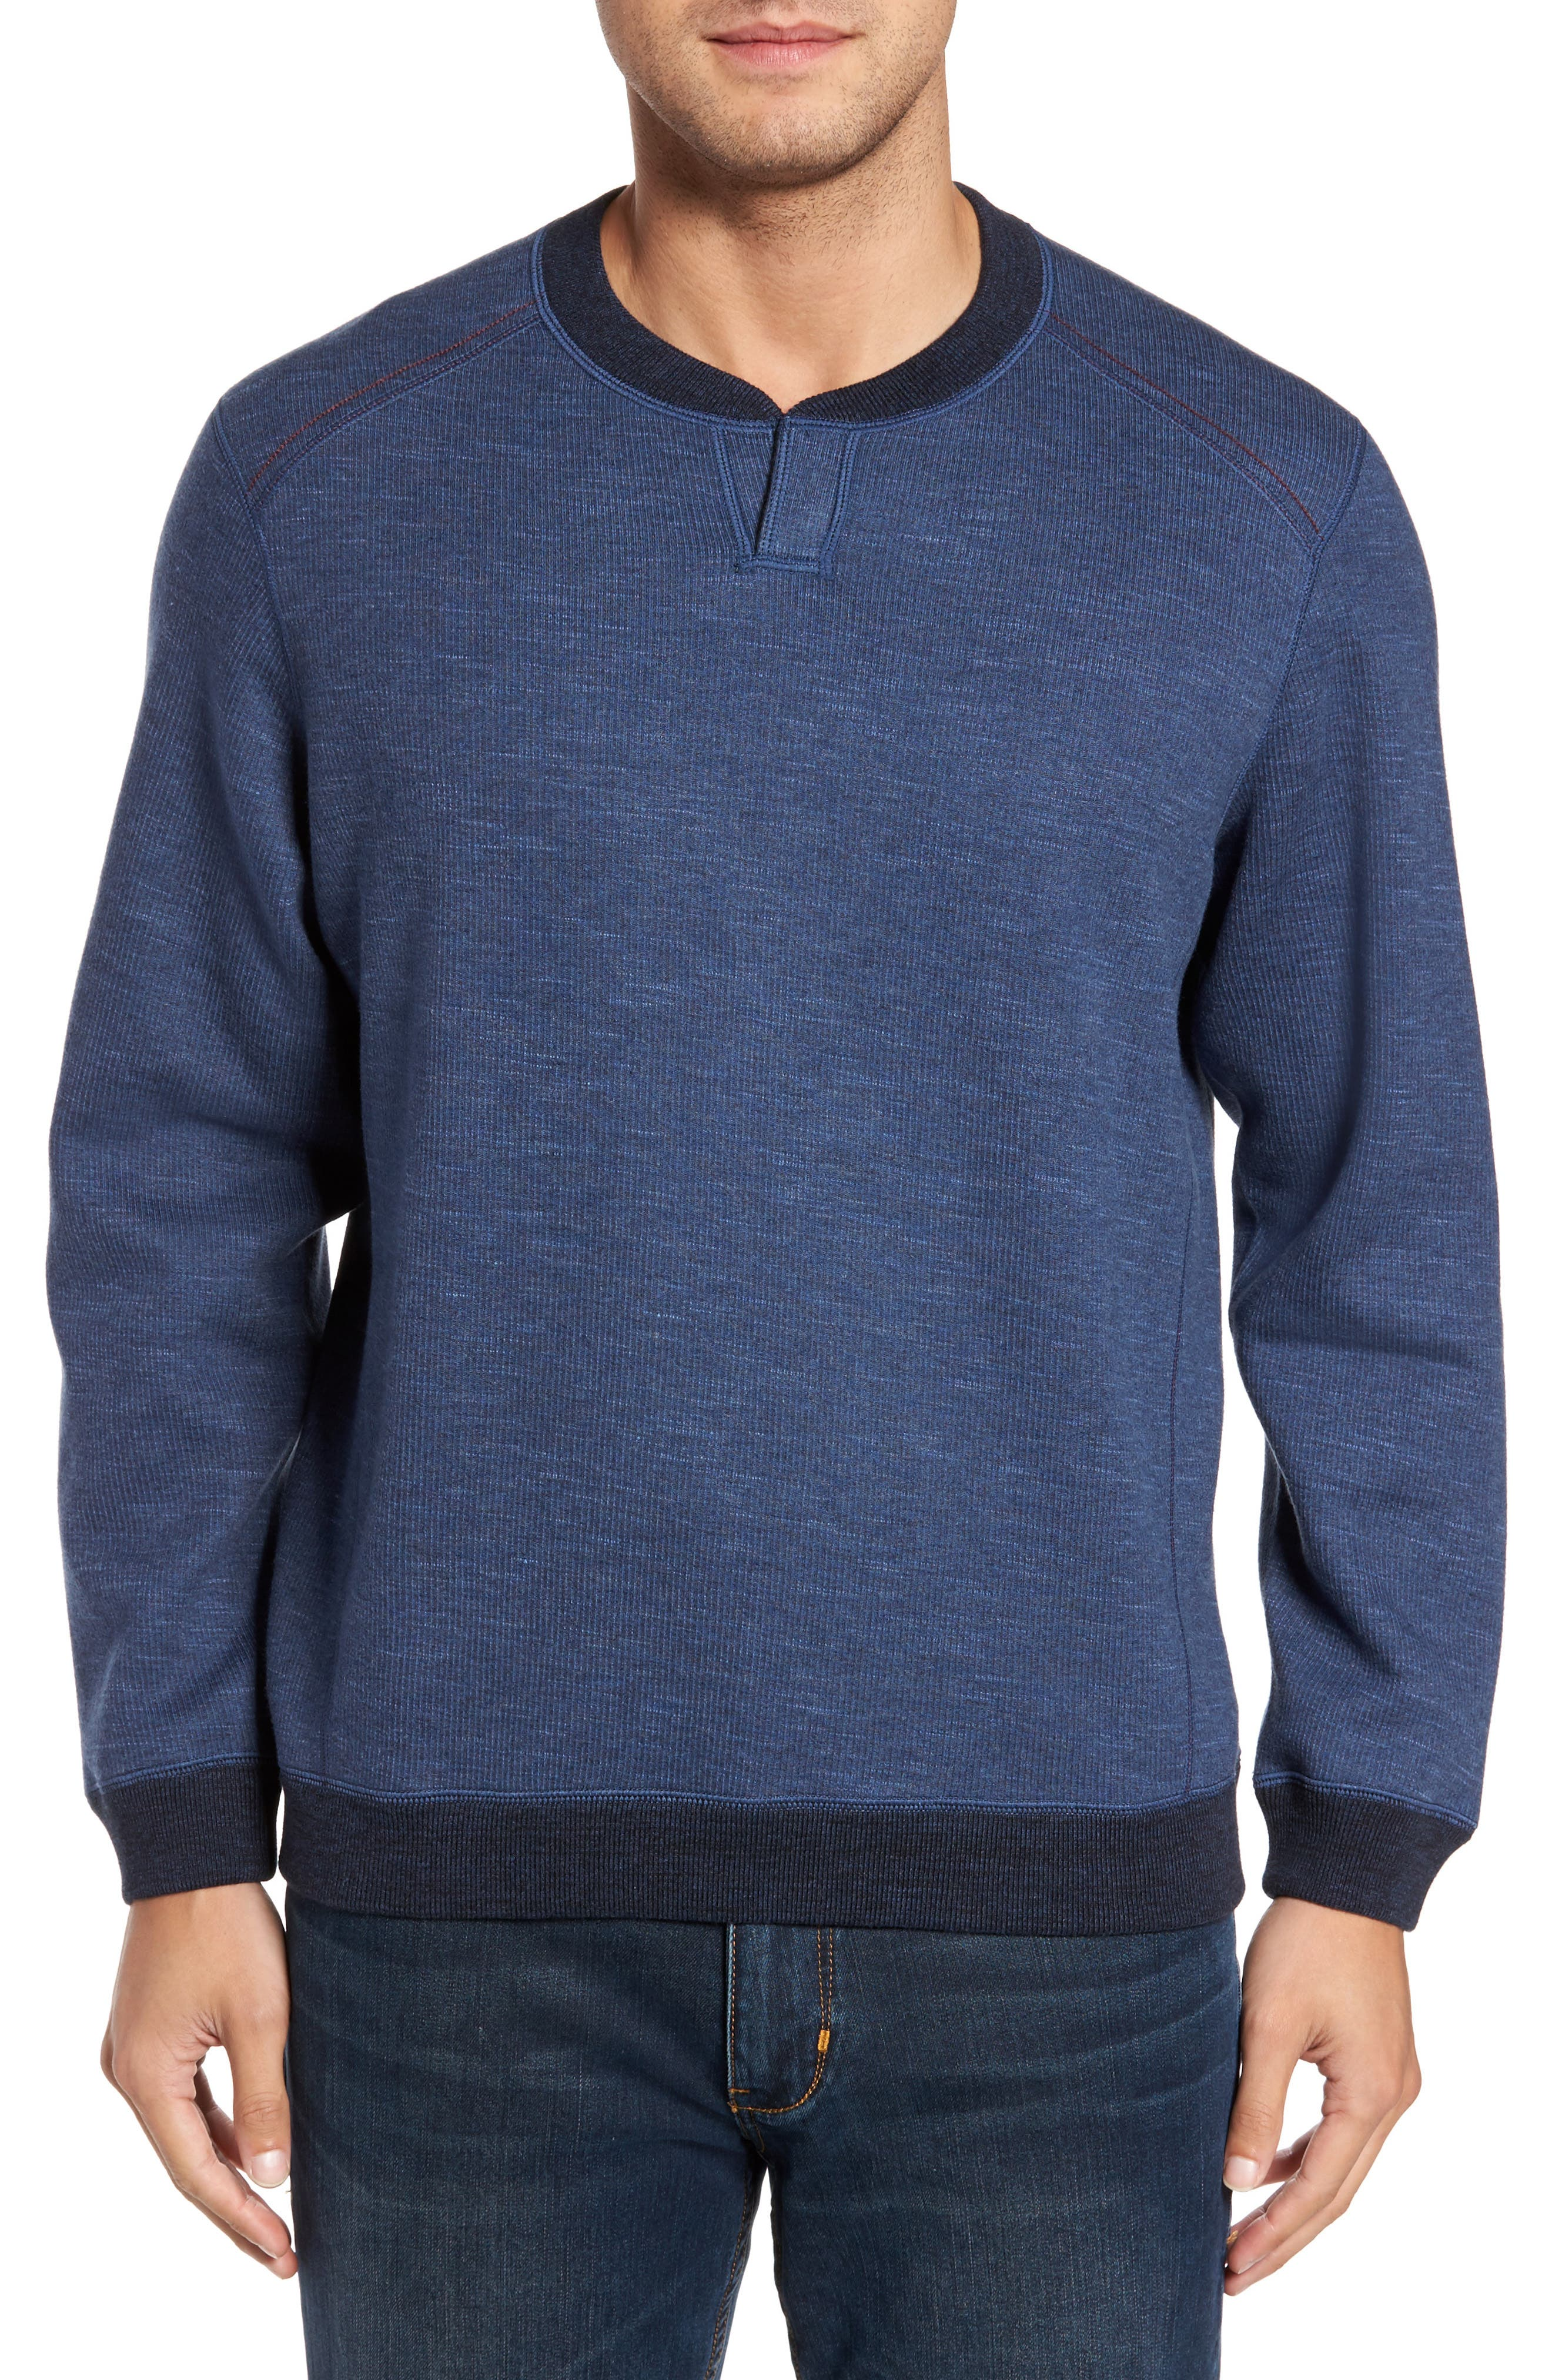 Flipsider Abaco Pullover,                             Main thumbnail 4, color,